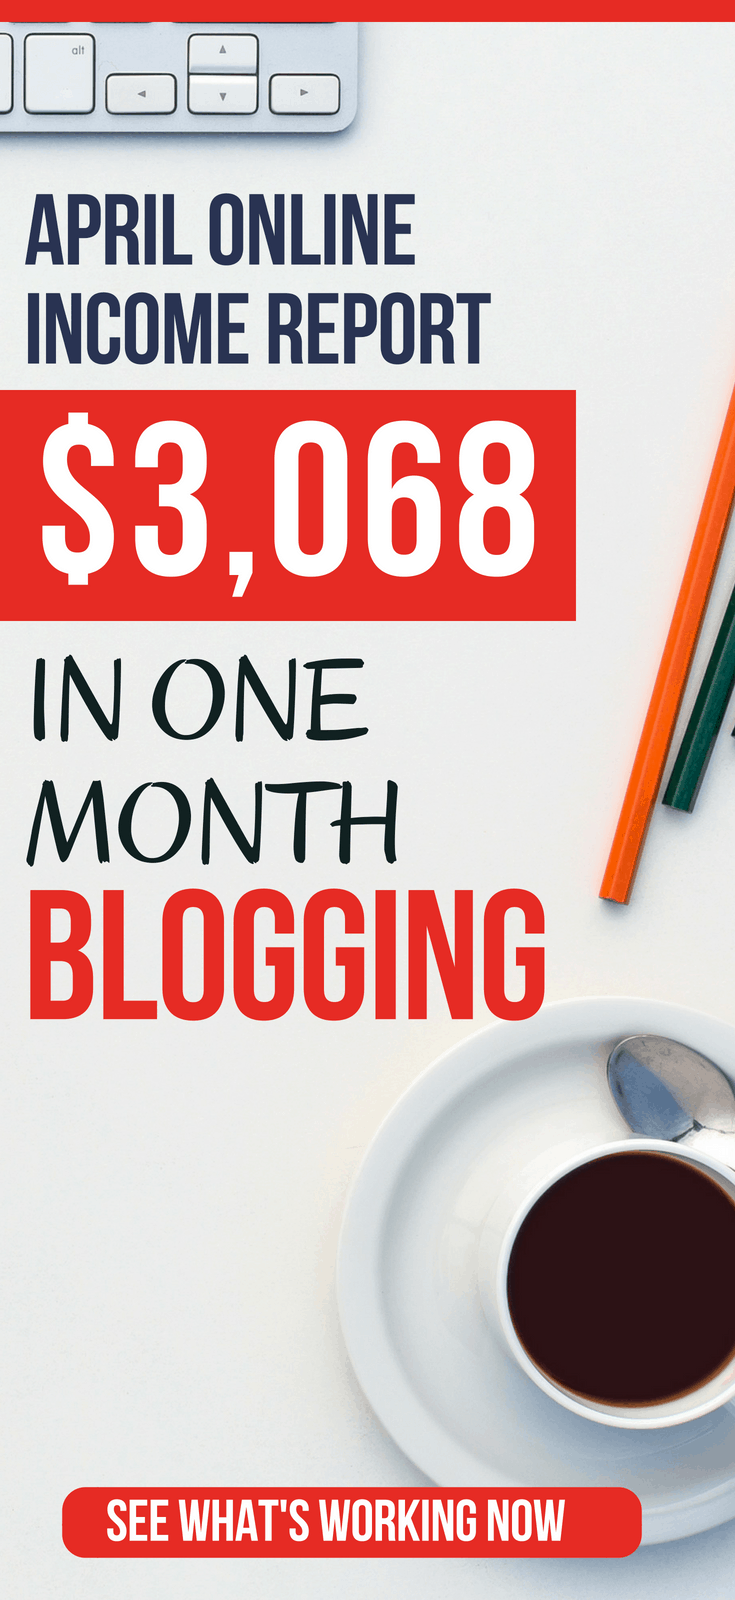 April 2018 Blog Income Report: How I Made $3,068 Blogging  Discover how I made $3,068 blogging in April 2018. Get the breakdown of revenue, expenses, and learn how my top source of traffic.   income report | income report 2018 | income reports blogging | blog income reports posts | how to make money blogging | pro blogger tips | make money blog   #thewaystowealth #blog #blogging #makemoneyonline #makemoney